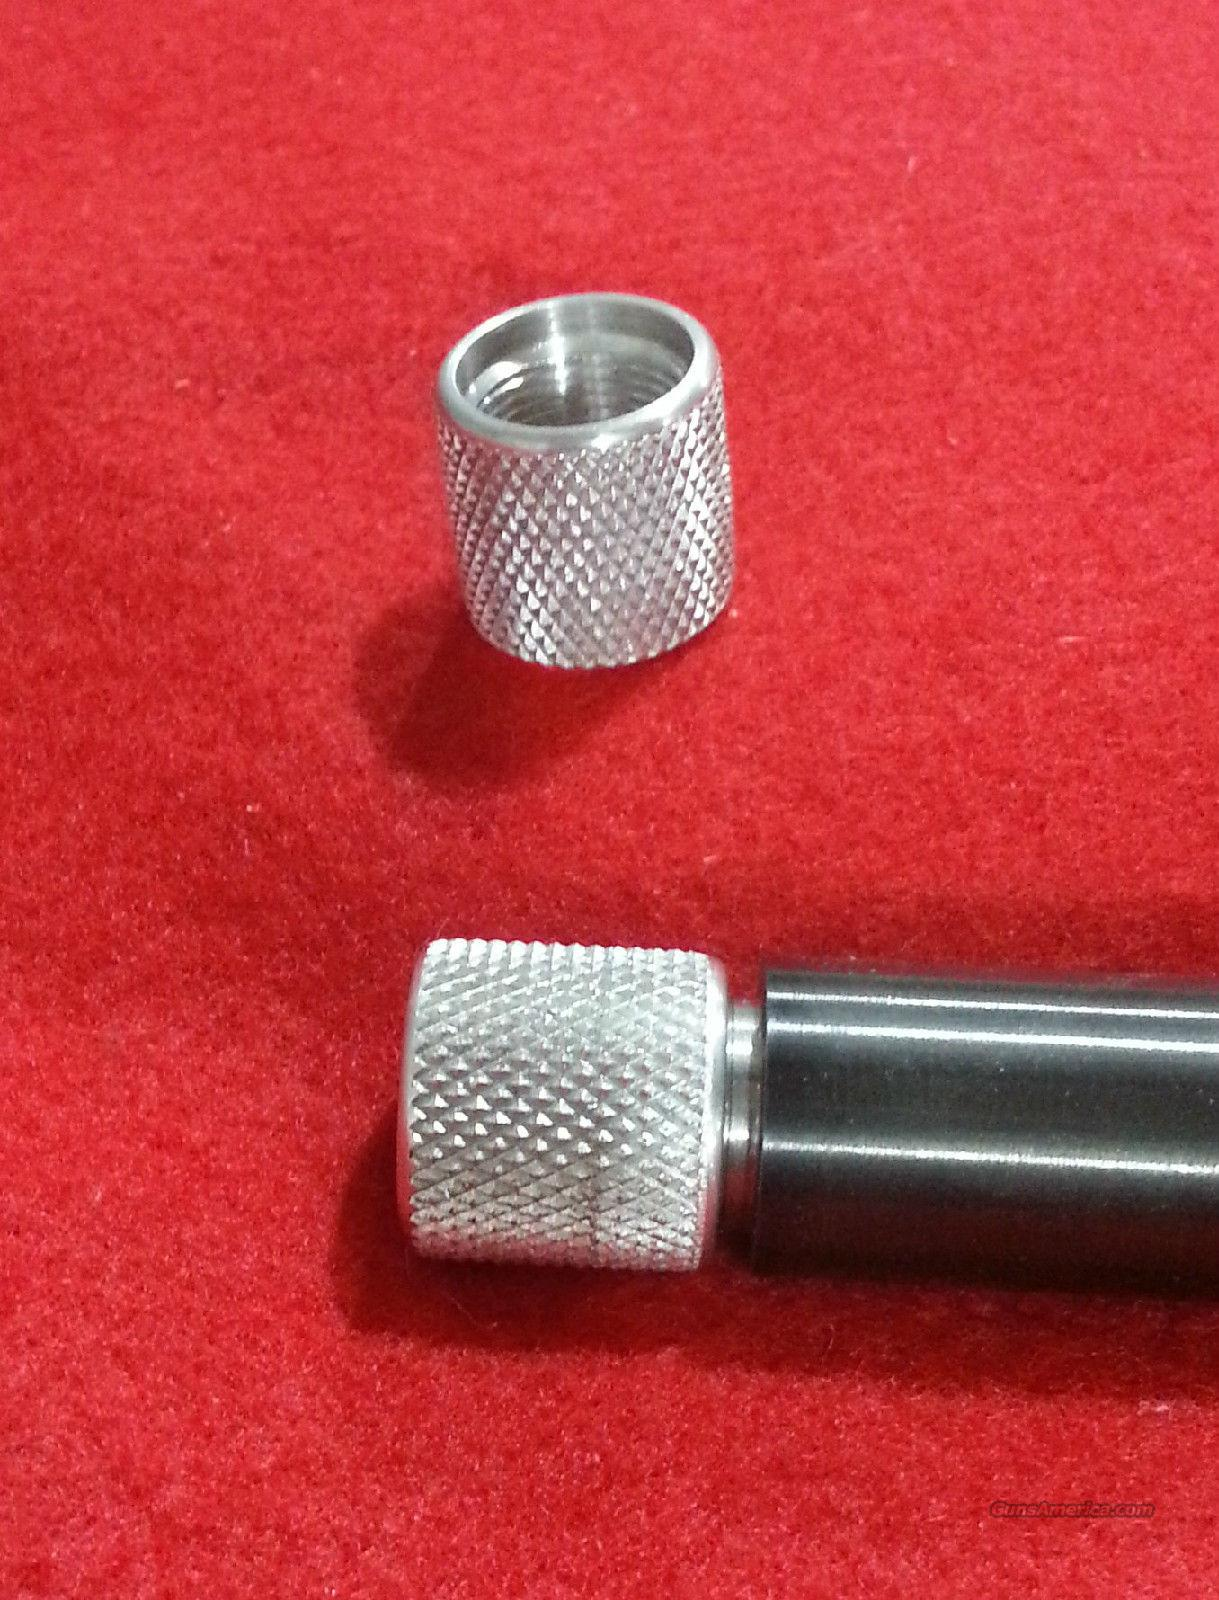 Thread protector muzzle break sil for sale